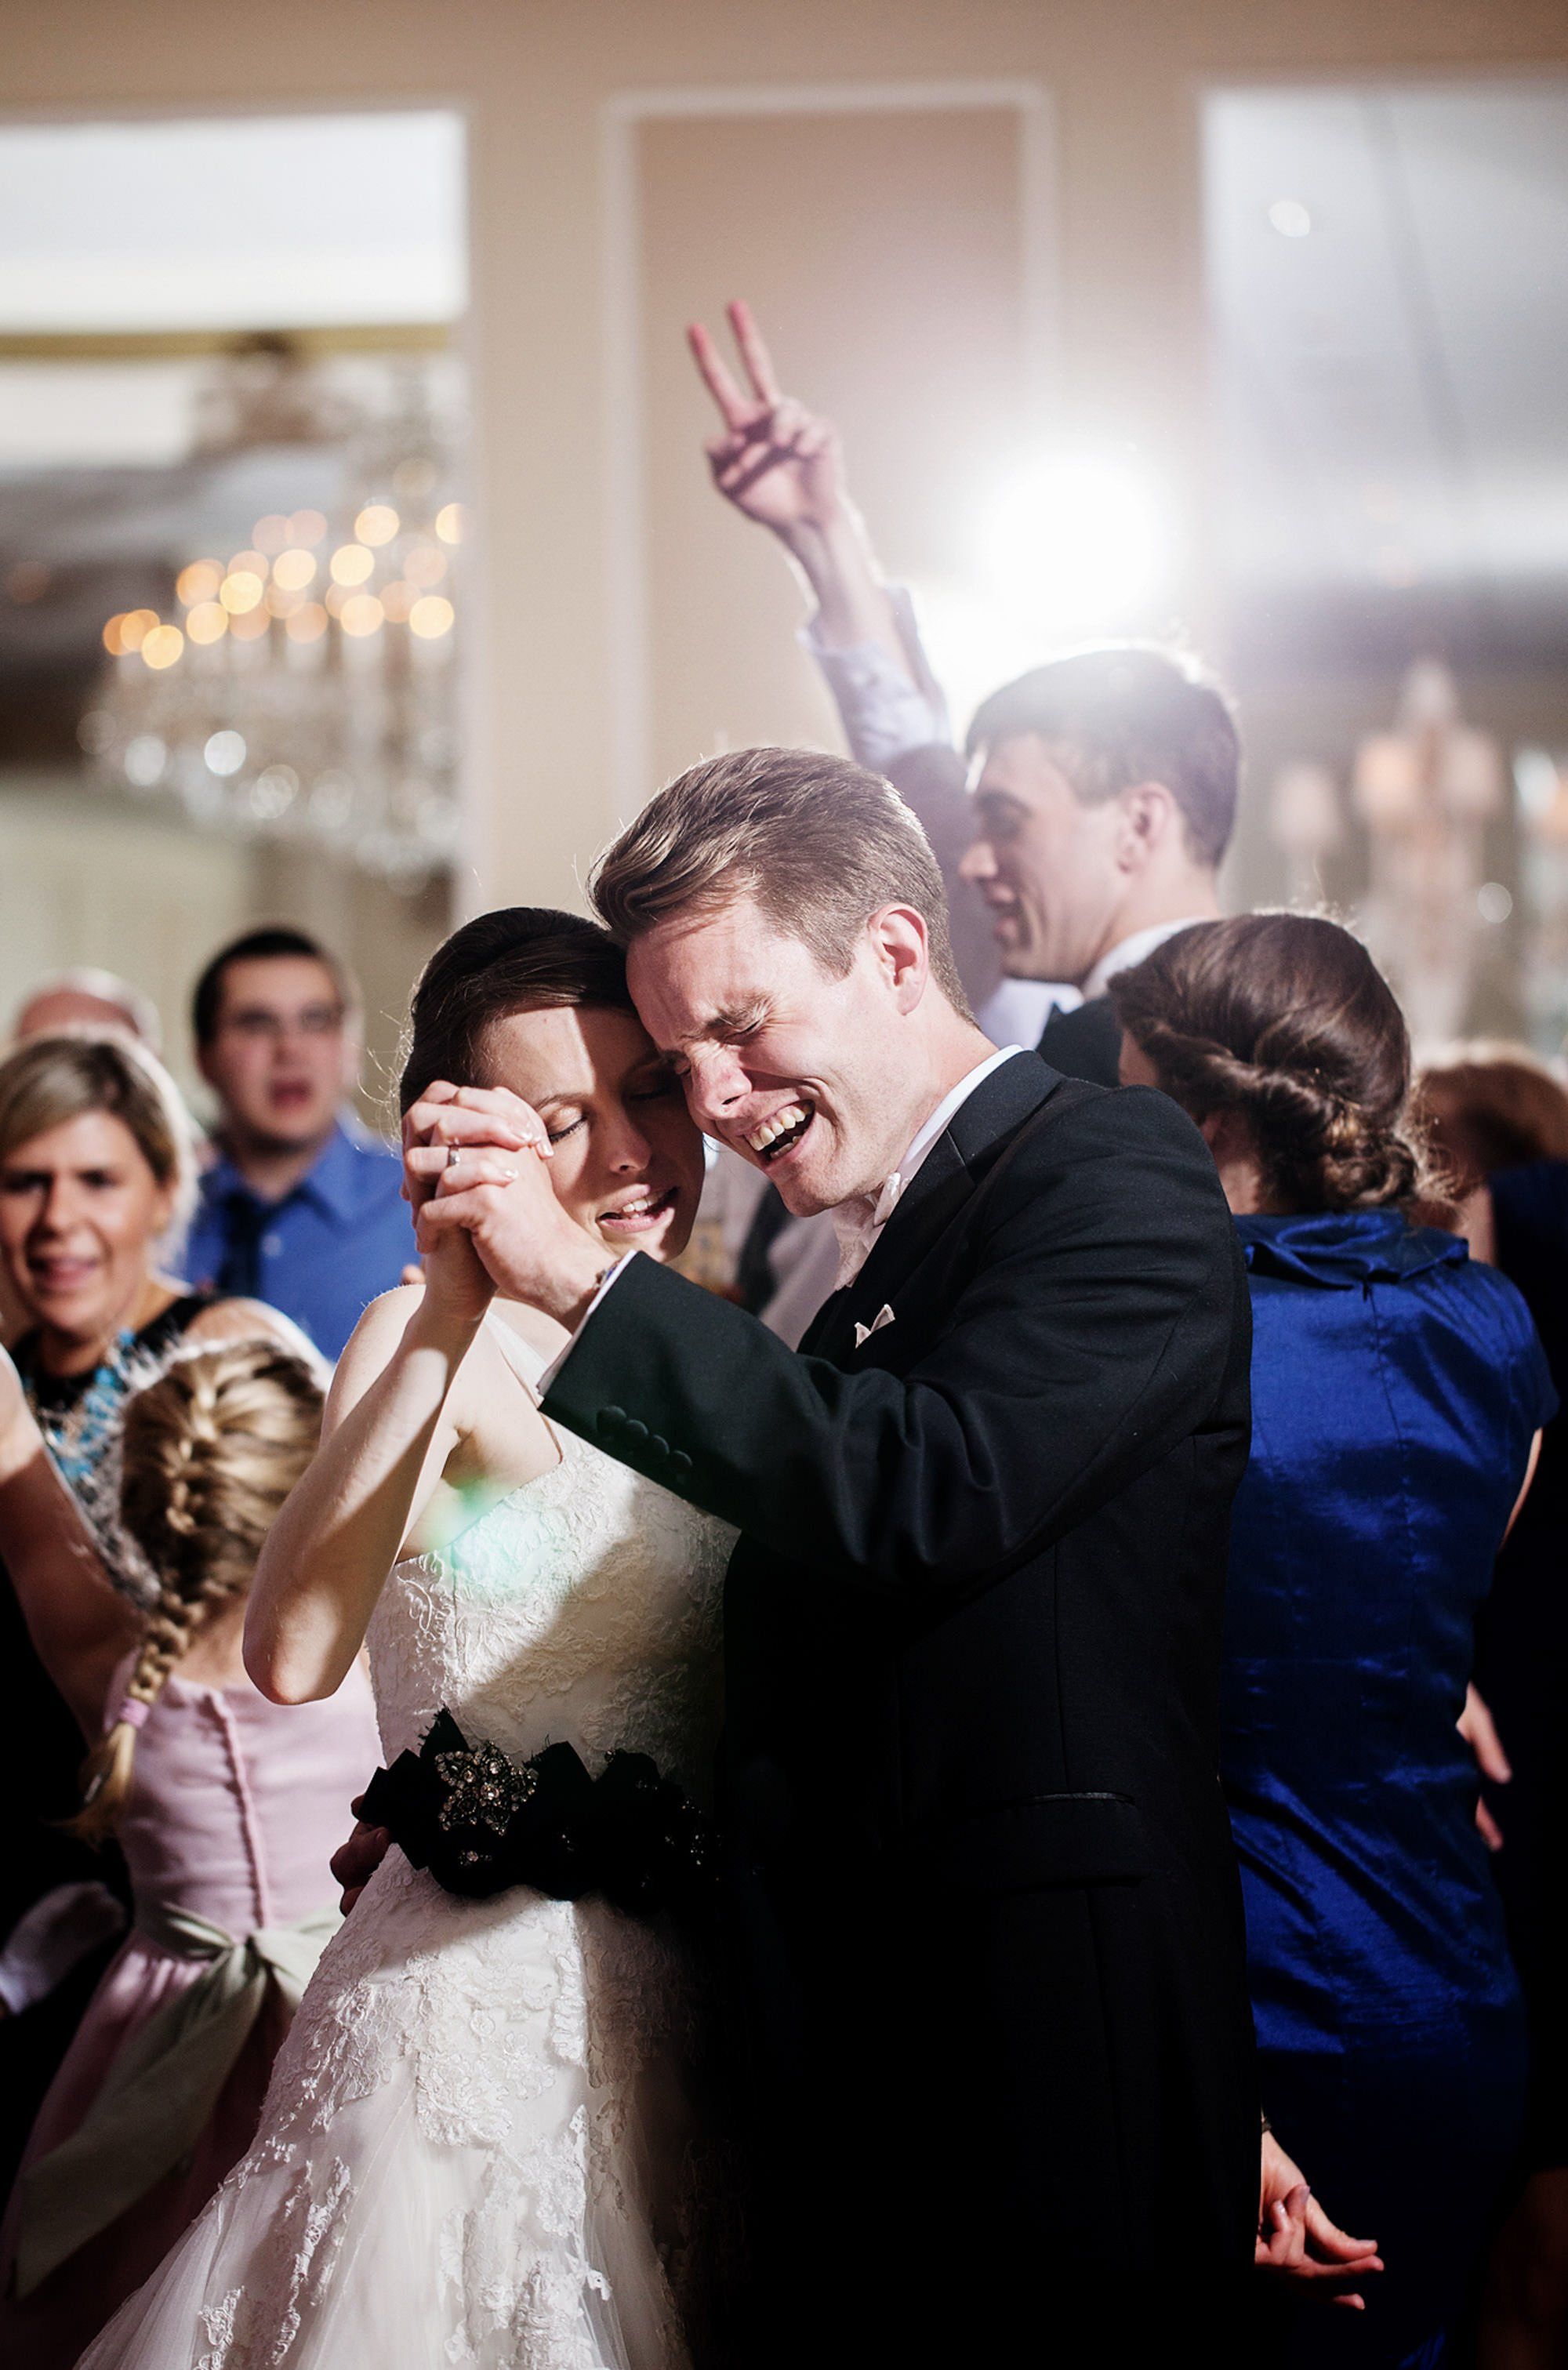 The bride and groom dance with their guests during their Spring Lake Bath and Tennis Club wedding reception.